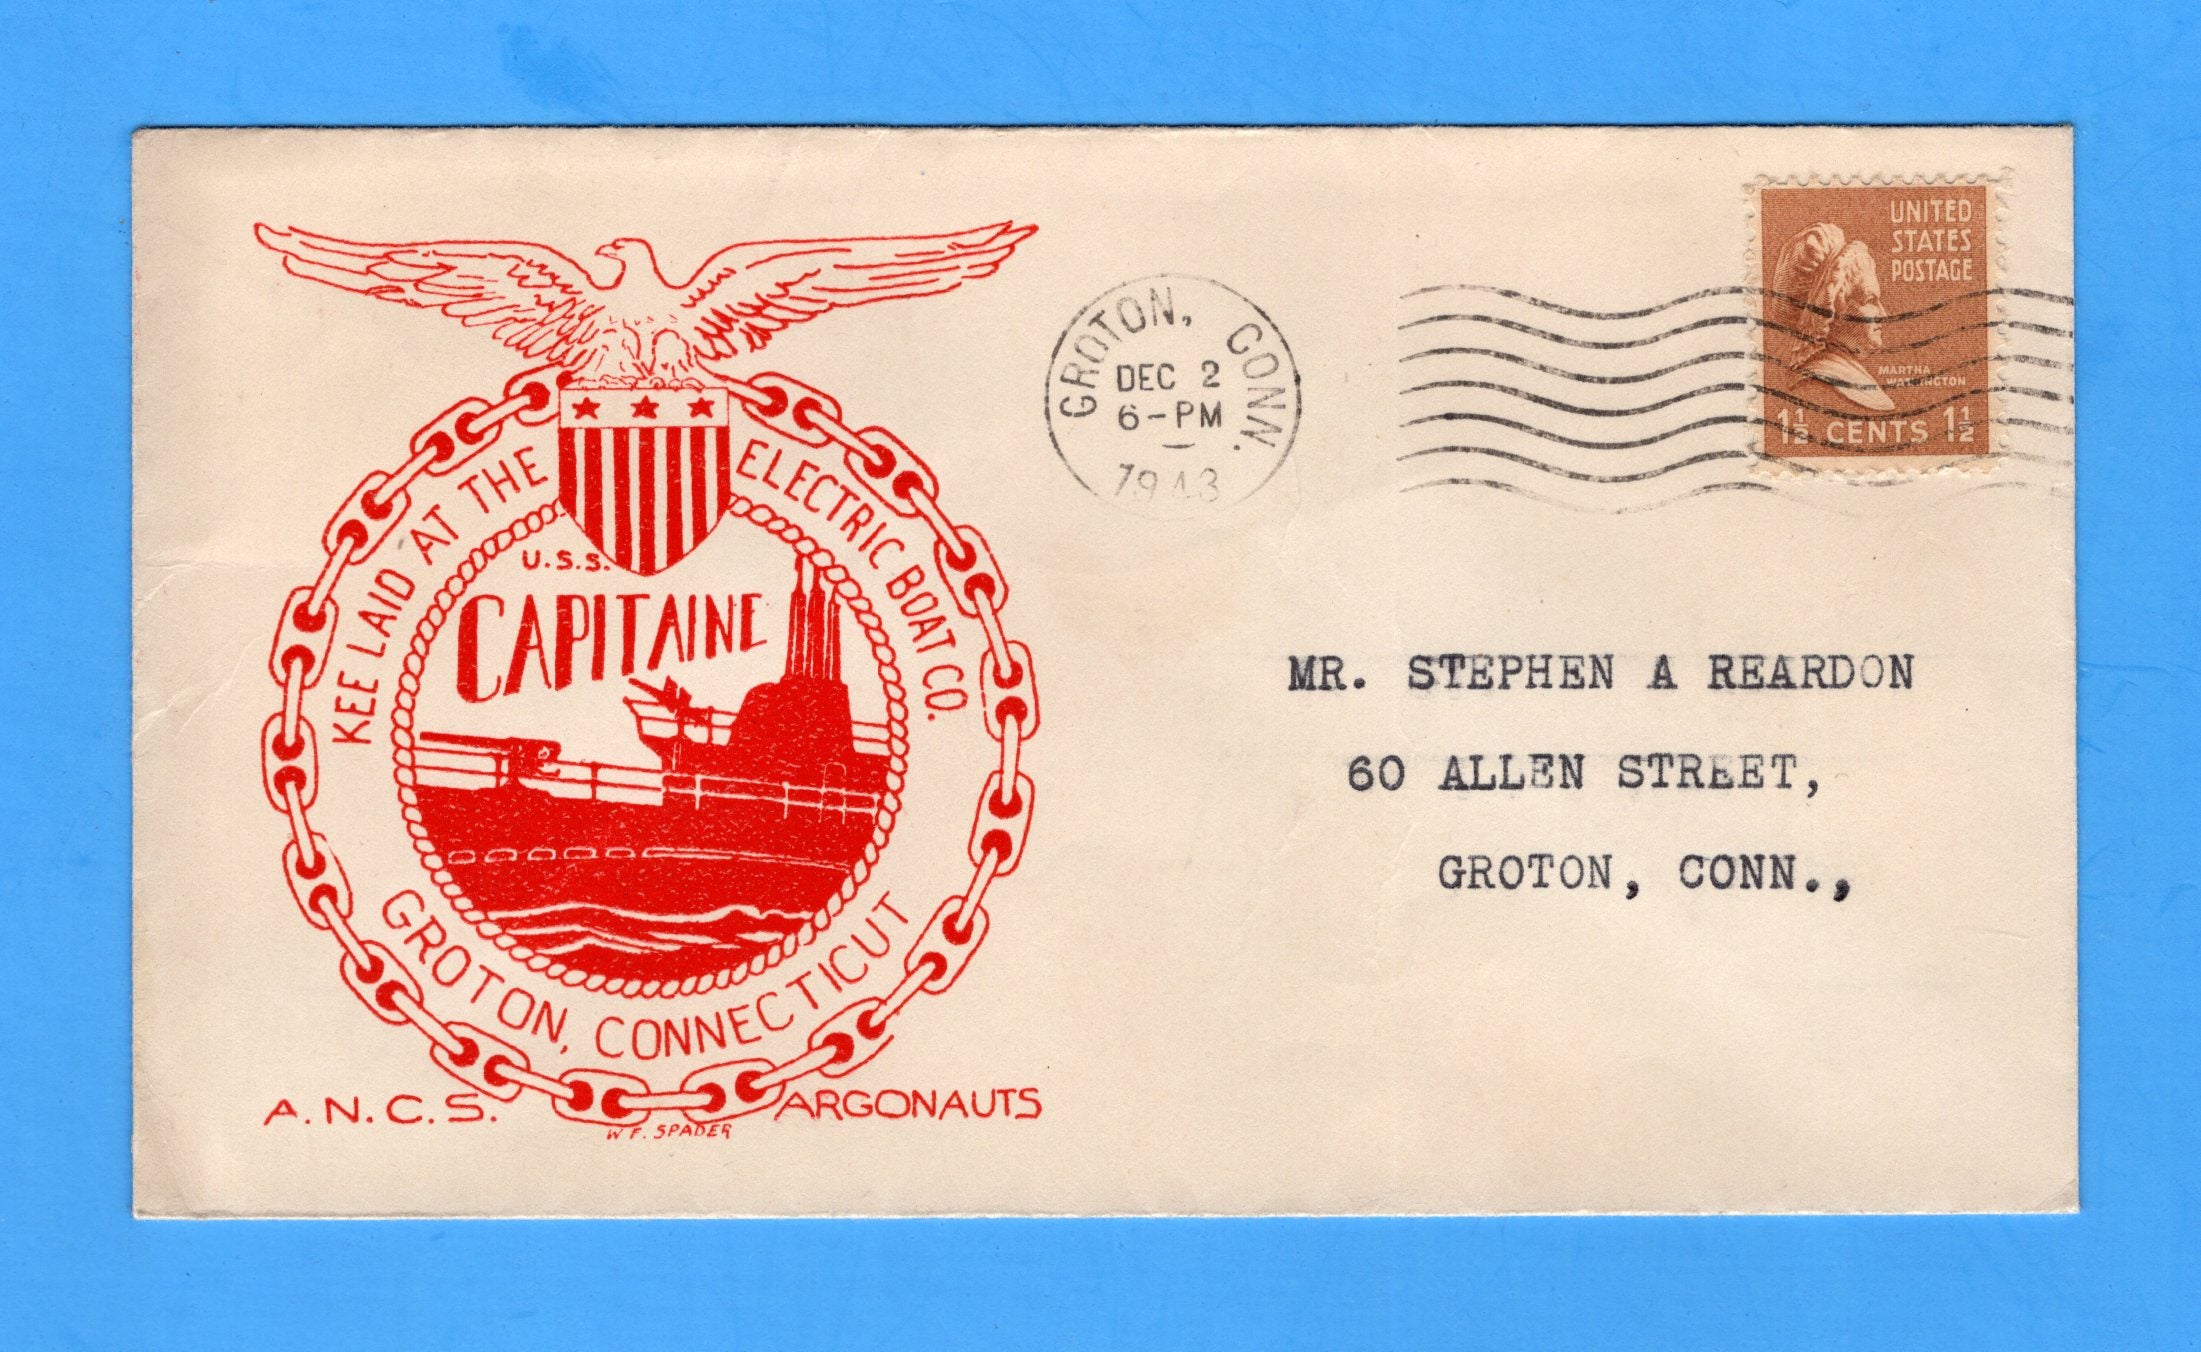 USS Capitaine SS-336 Keel Laid December 2, 1943 - Raised Print Cachet